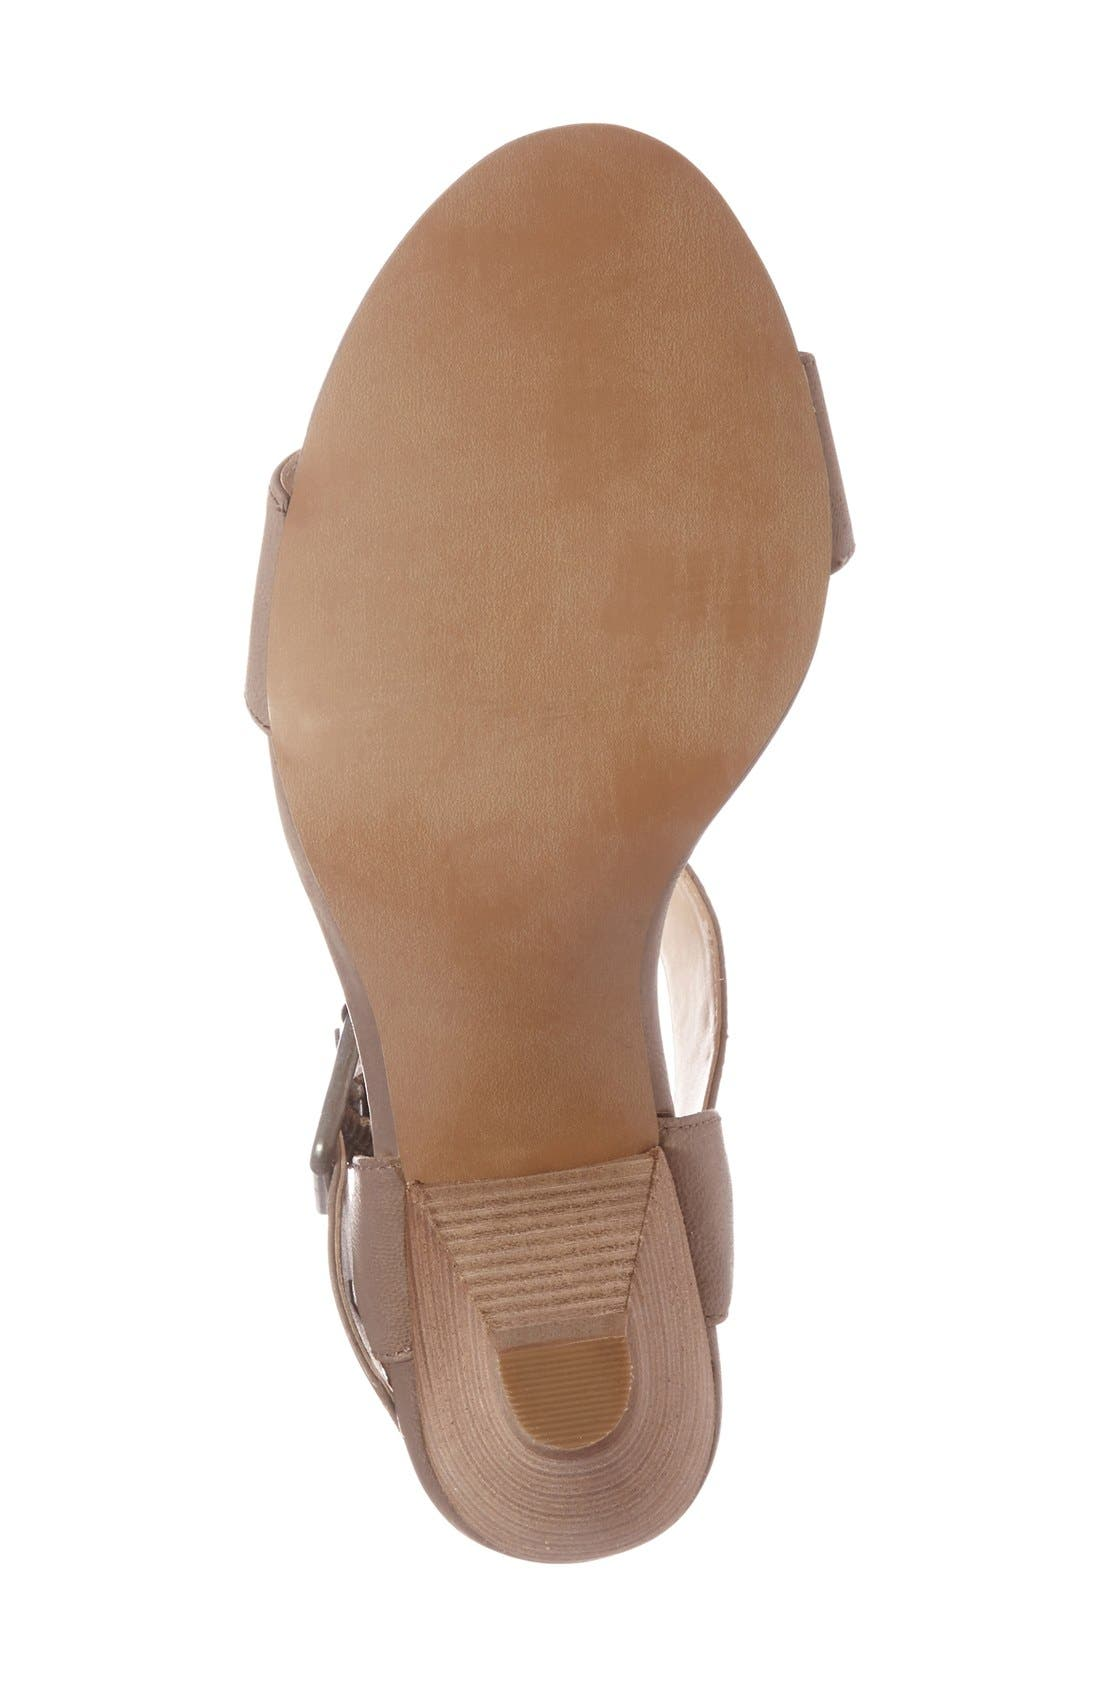 'Missy' Sandal,                             Alternate thumbnail 4, color,                             Taupe Wax Leather